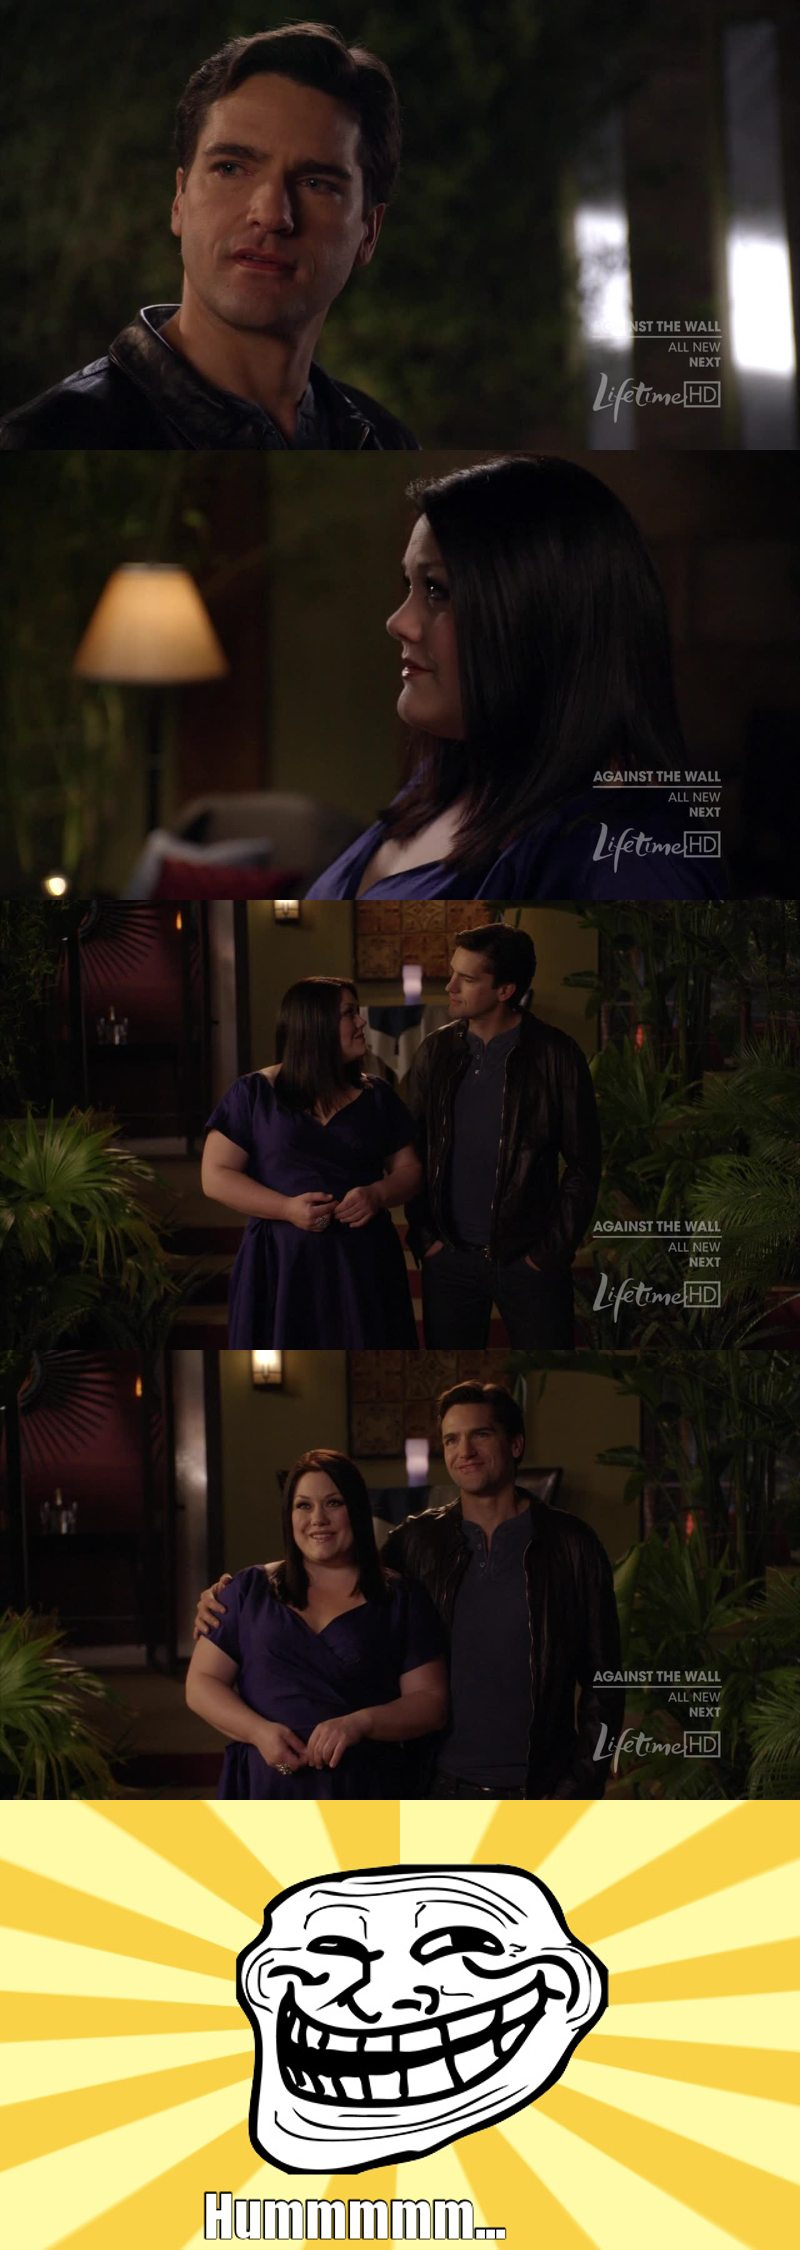 Drop dead diva s03e07 mothers day hdtv xvid fqm avi veconso - Drop dead diva script ...